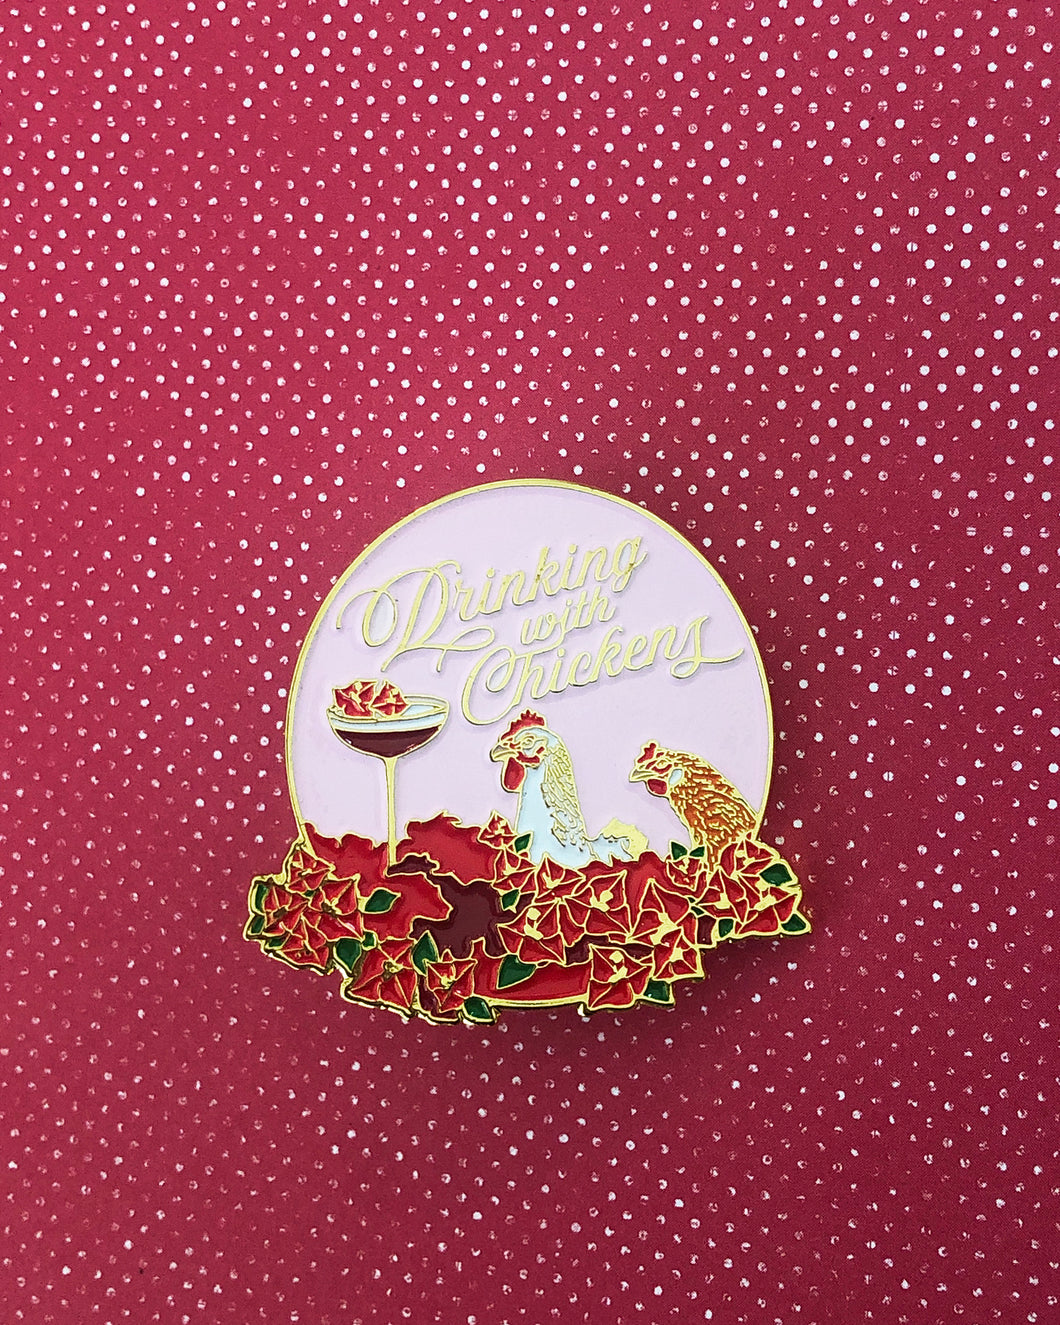 Drinking with Chickens Book Cover-Inspired Pin